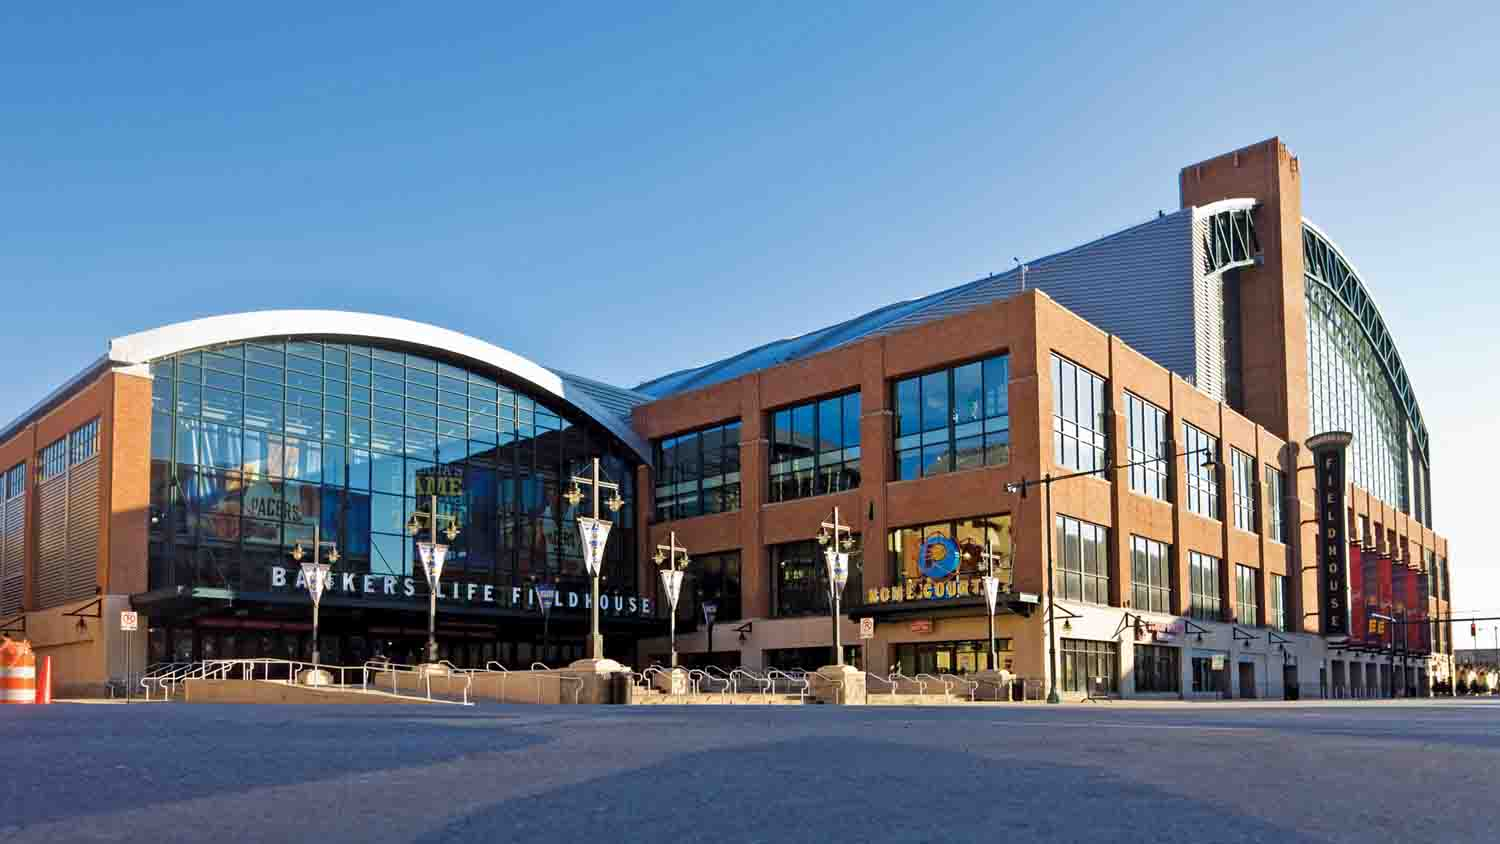 Bankers life fieldhouse 1